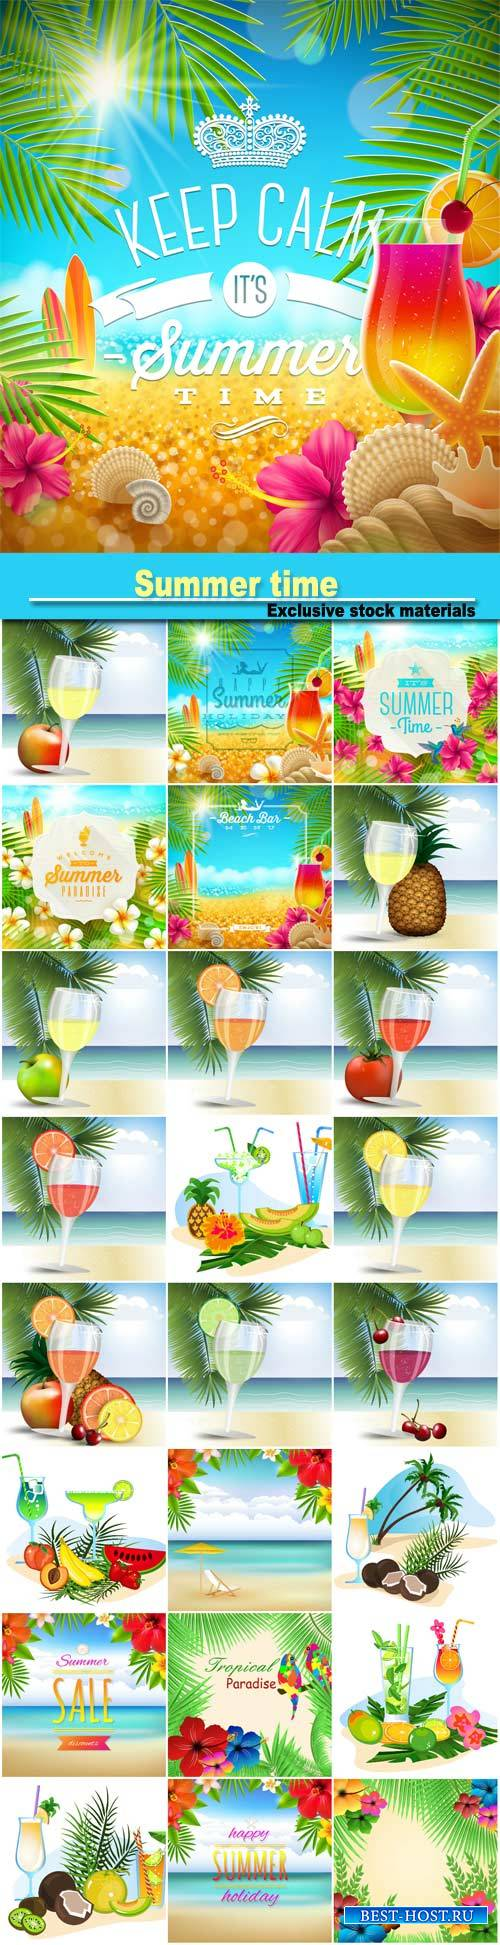 Summer time, tropical paradise, cocktails and fresh juices